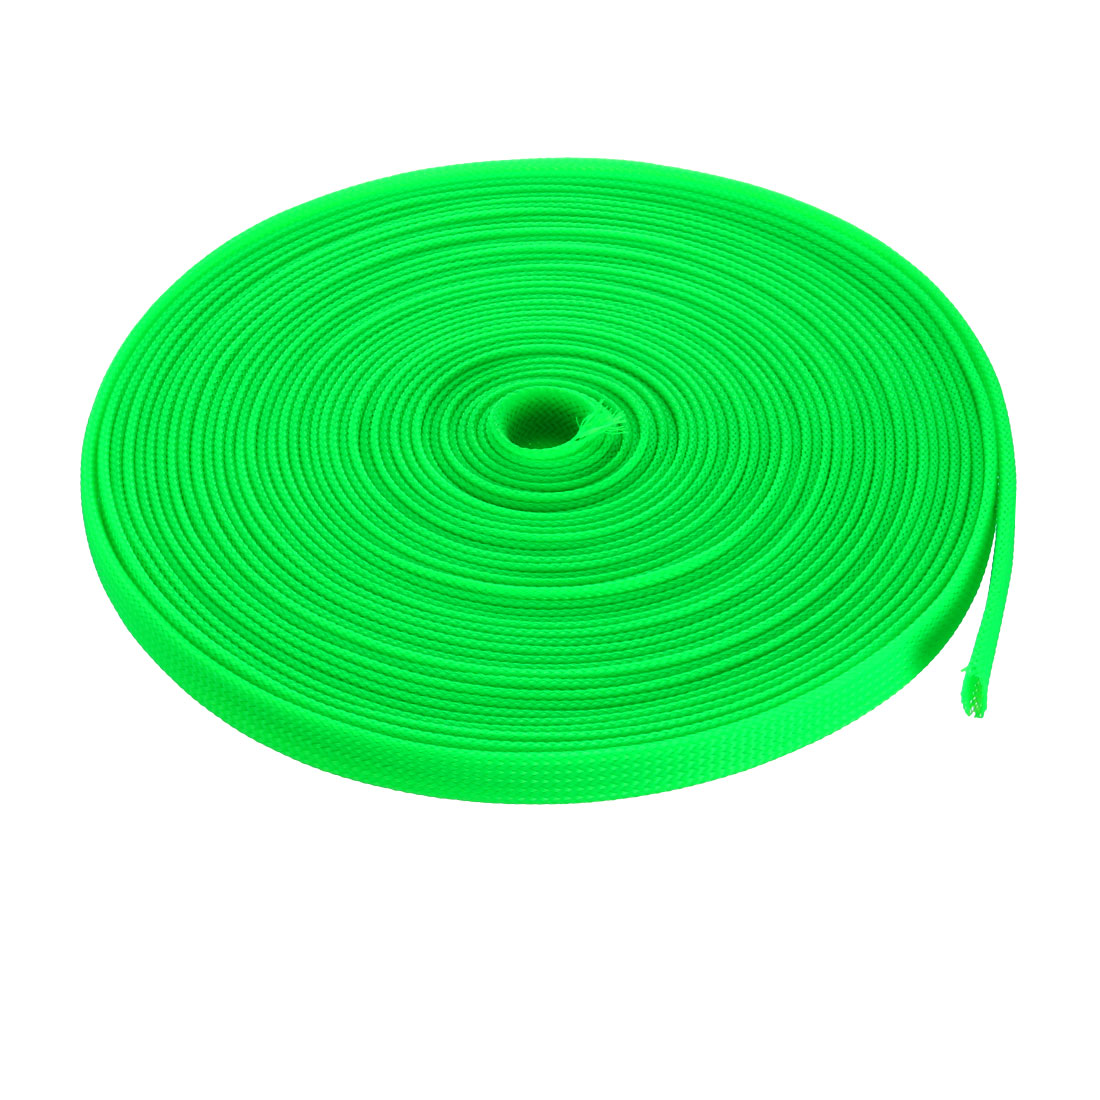 10mm Dia Tight Braided PET Expandable Sleeving Cable Wrap Sheath Fluorescent Green 32Ft